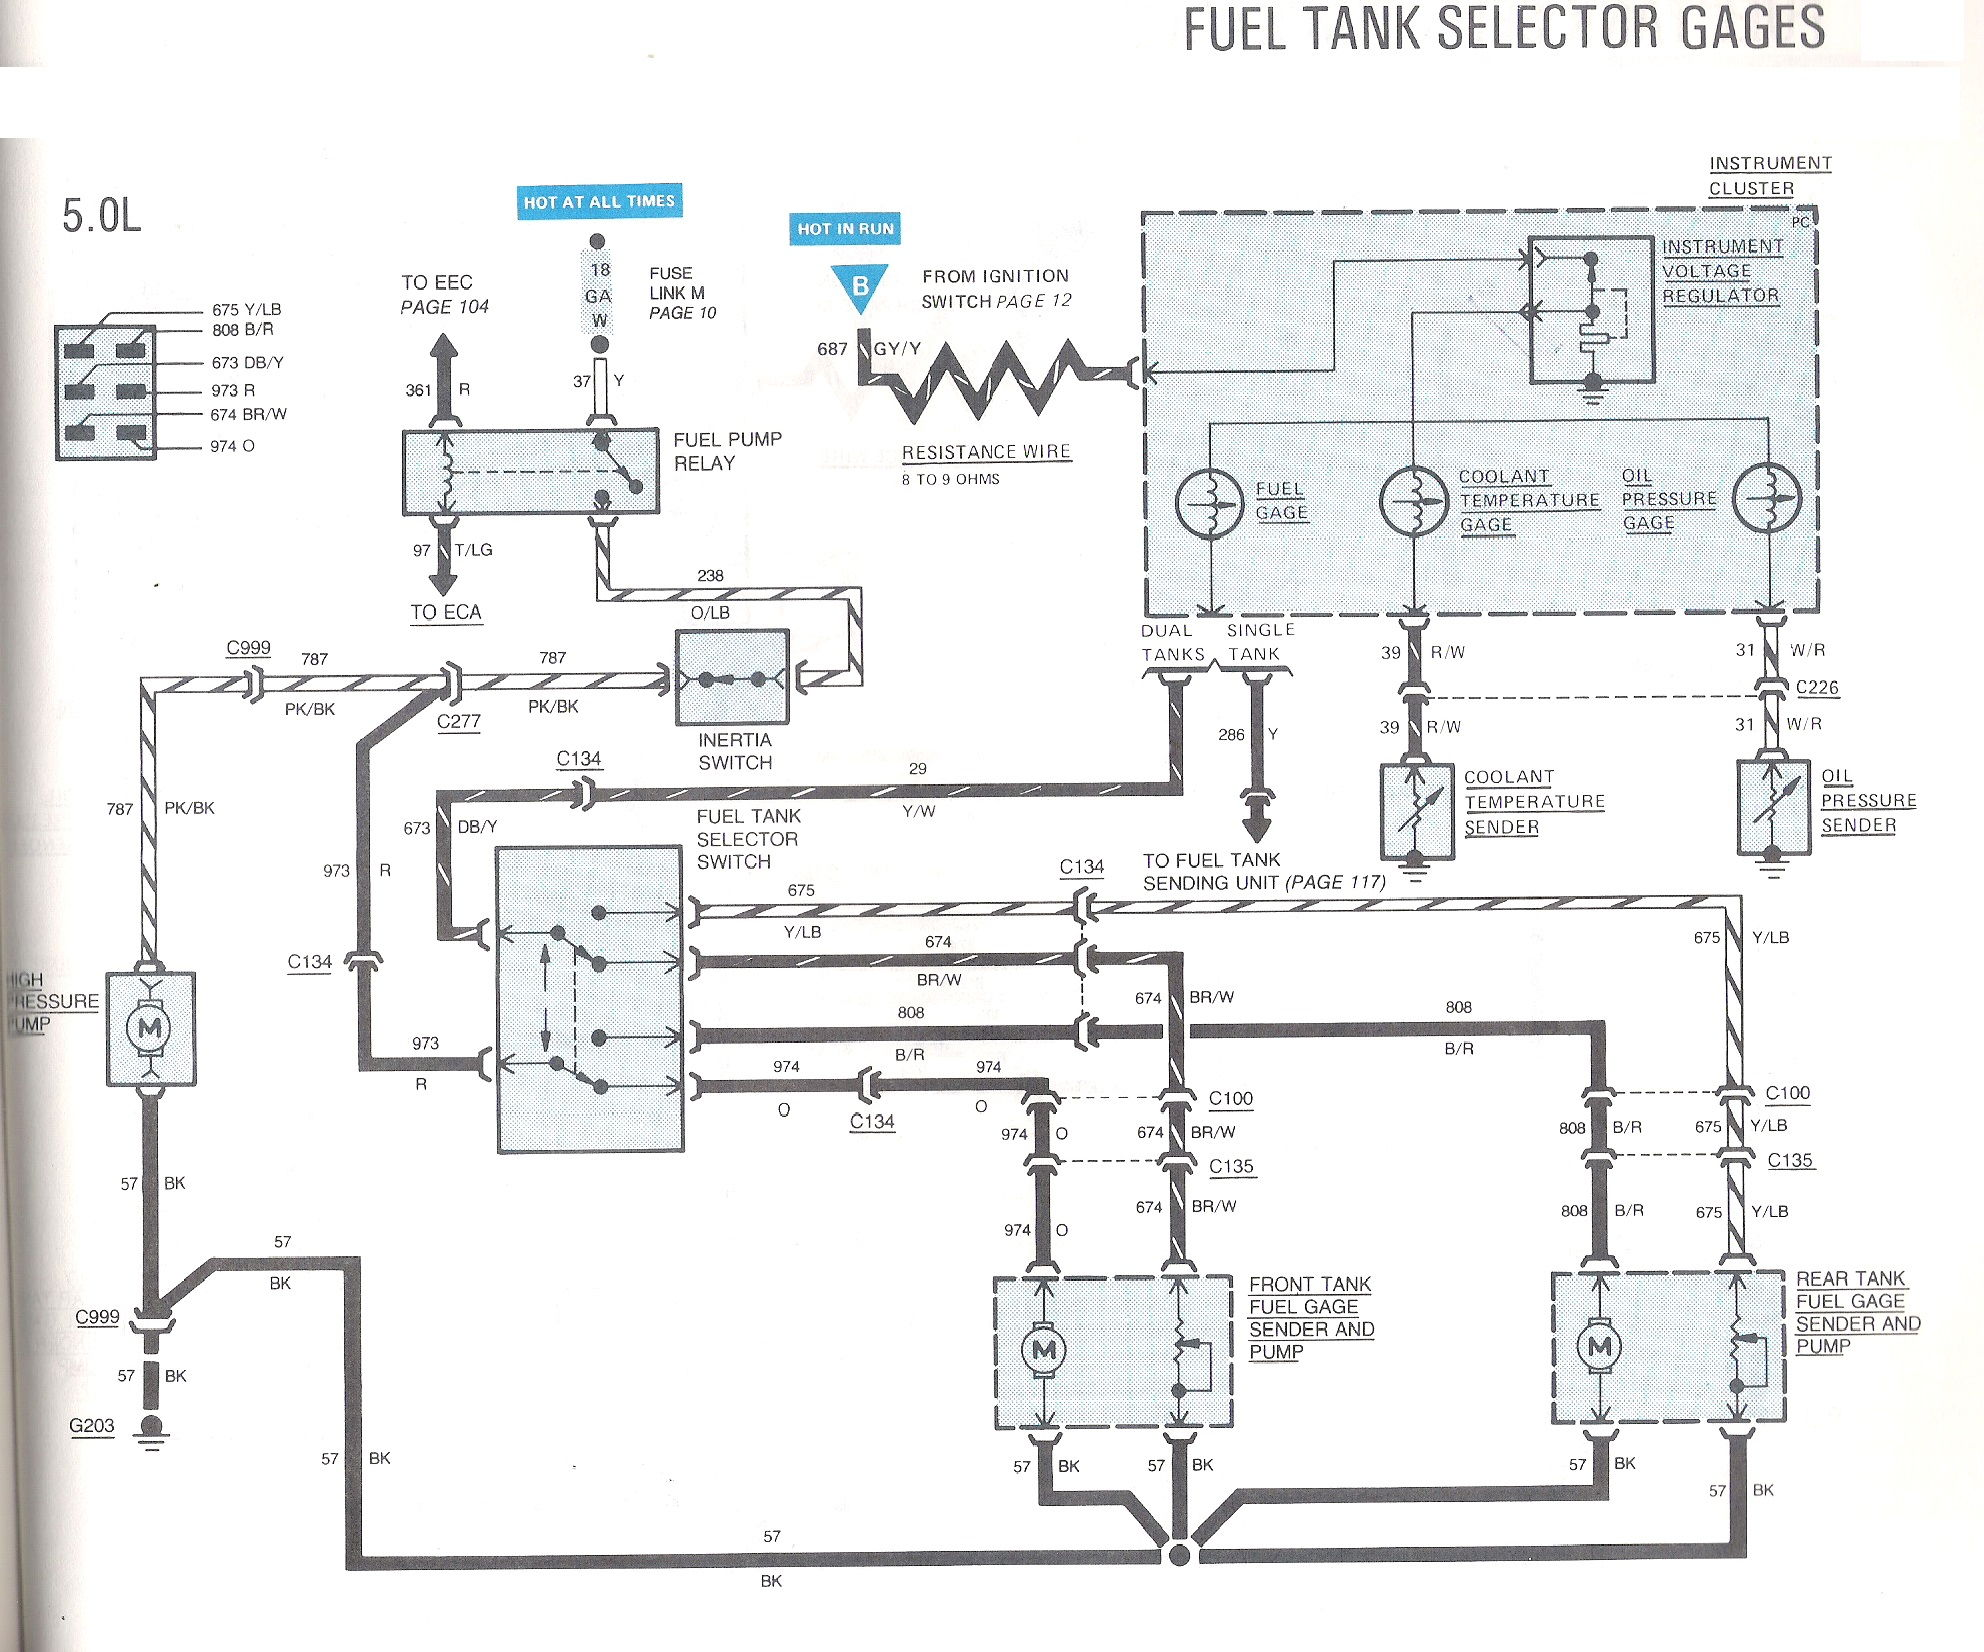 Jeep Fuel Gauge | Wiring Diagram Database Omix Fuel Gauge Wiring Diagram For on wiring diagram for blower motor, wiring diagram for water pump, wiring diagram for voltage regulator, wiring diagram for hour meter, wiring diagram for distributor, wiring diagram for relay, wiring diagram for horn, wiring diagram for odometer, wiring diagram for transmission, wiring diagram for headlight switch, wiring diagram for backup camera, wiring diagram for generator, wiring diagram for voltmeter, wiring diagram for fuse box, wiring diagram for brake booster, wiring diagram for a/c compressor, wiring diagram for speaker, wiring diagram for brake proportioning valve, wiring diagram for steering column,